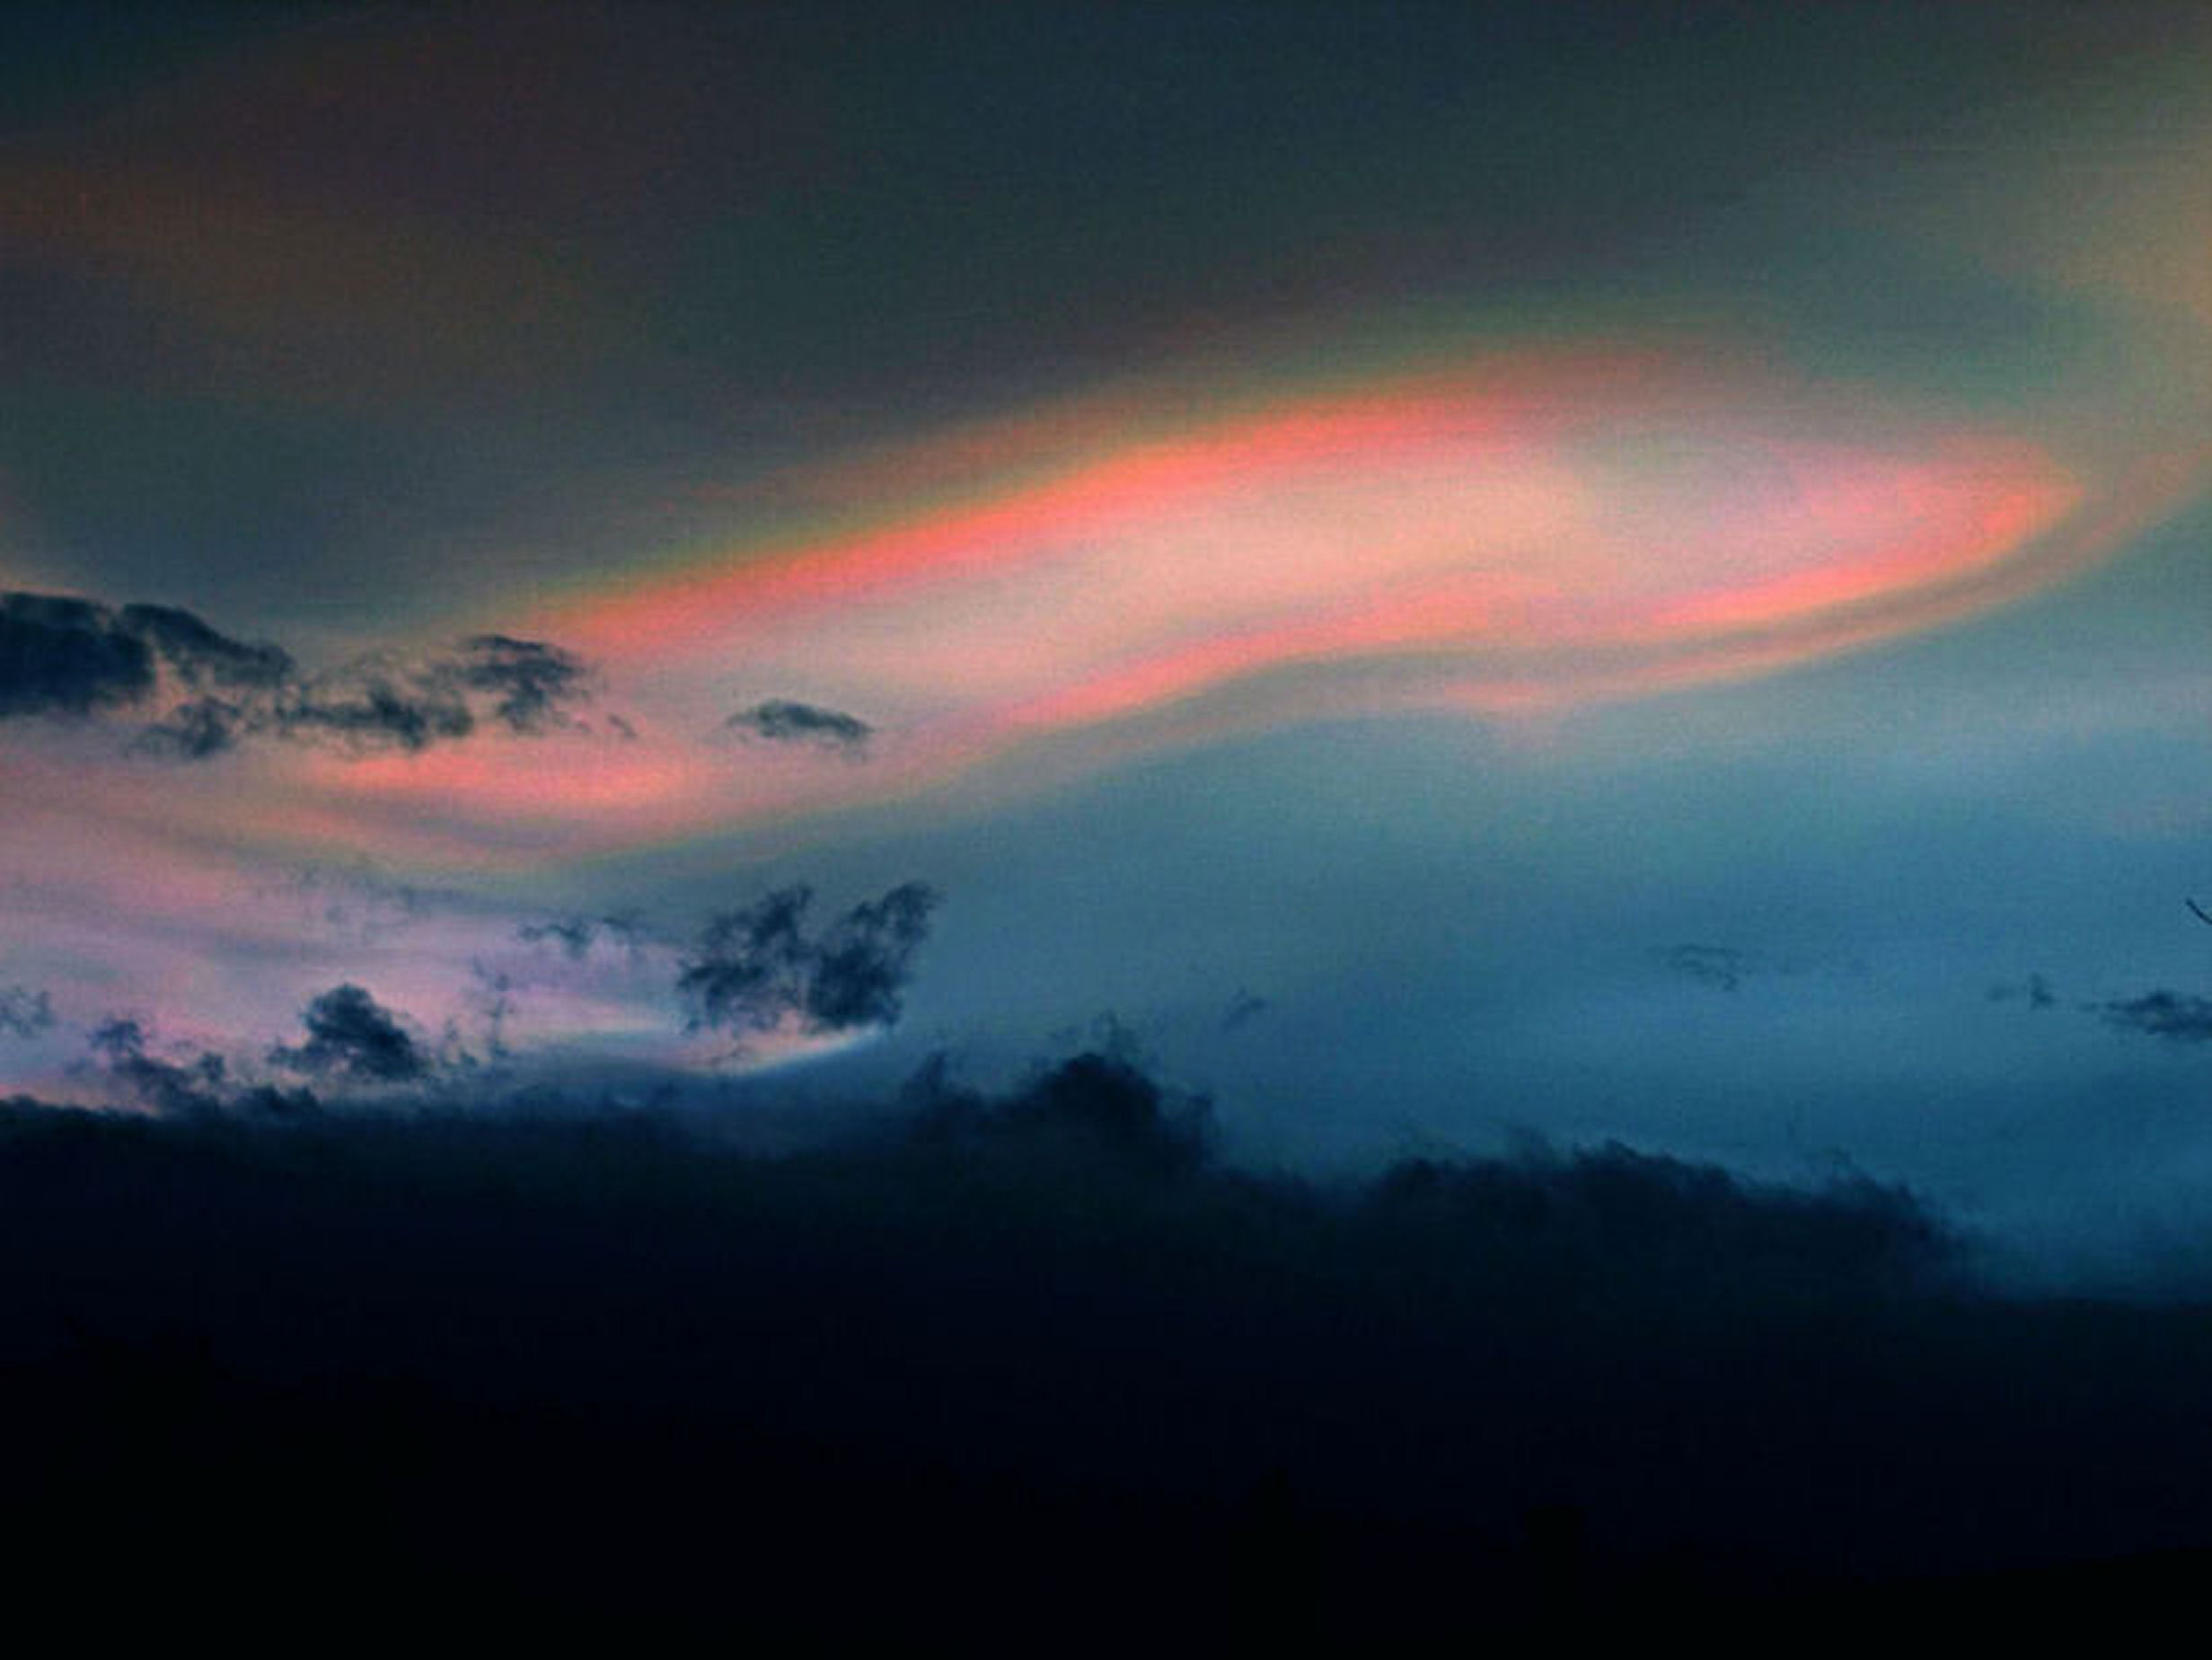 A striking image of Nacreous Clouds by Ken Kennedy with no information available.